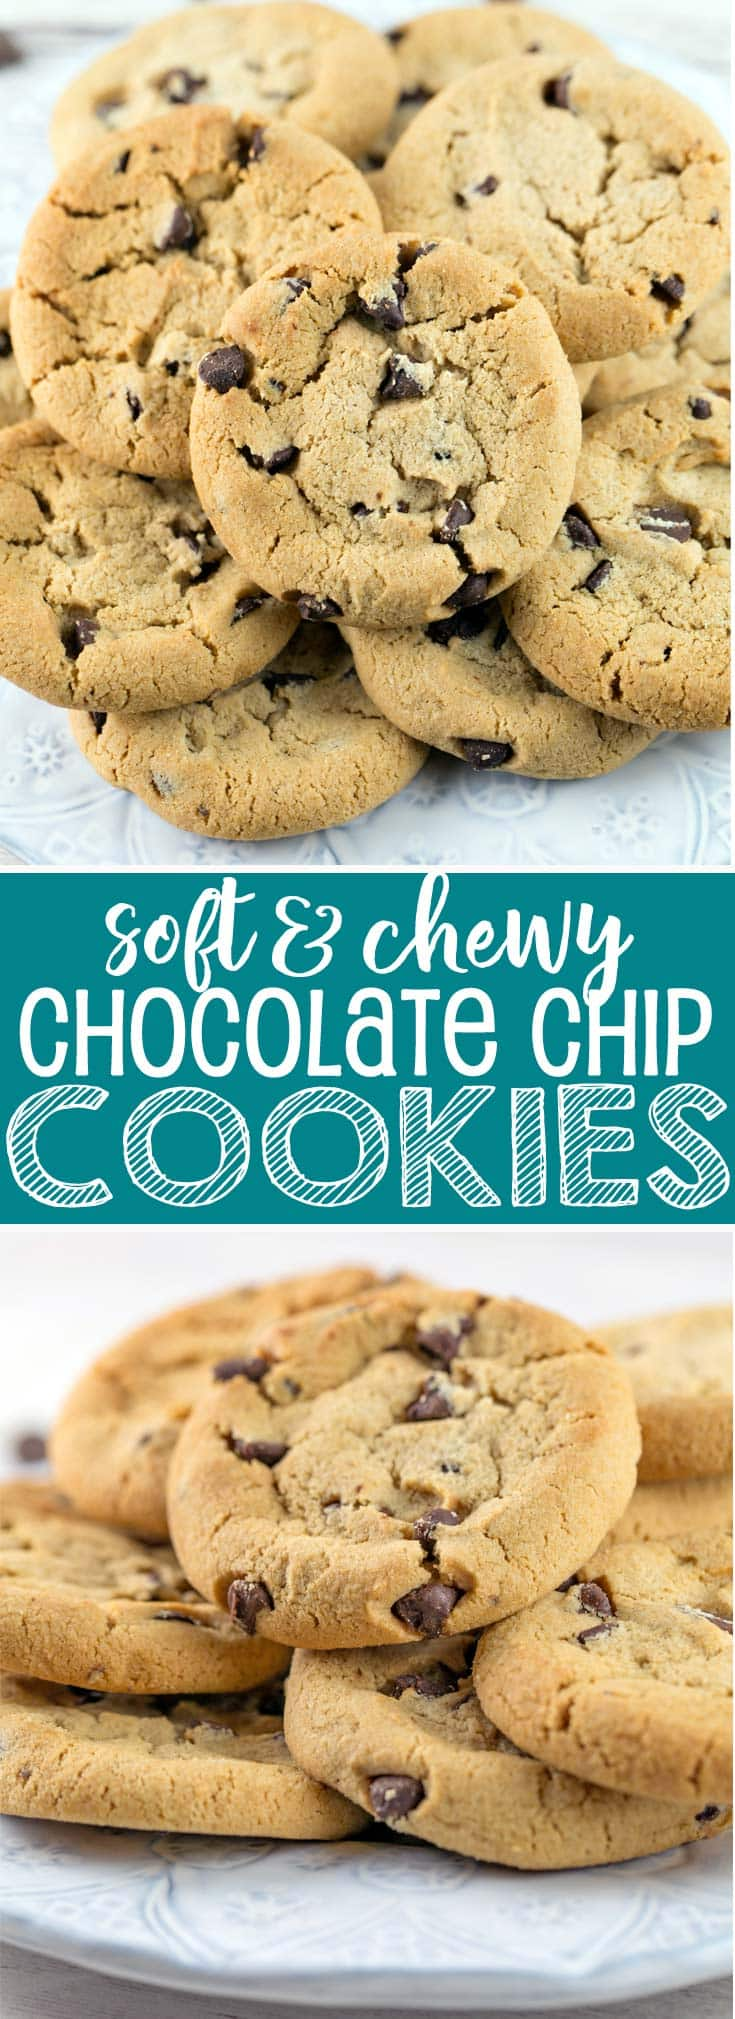 Soft and Chewy Chocolate Chip Cookies: mixed in one bowl with no refrigeration step before baking, these easy chocolate chip cookies are a crowd-pleasing favorite! {Bunsen Burner Bakery}